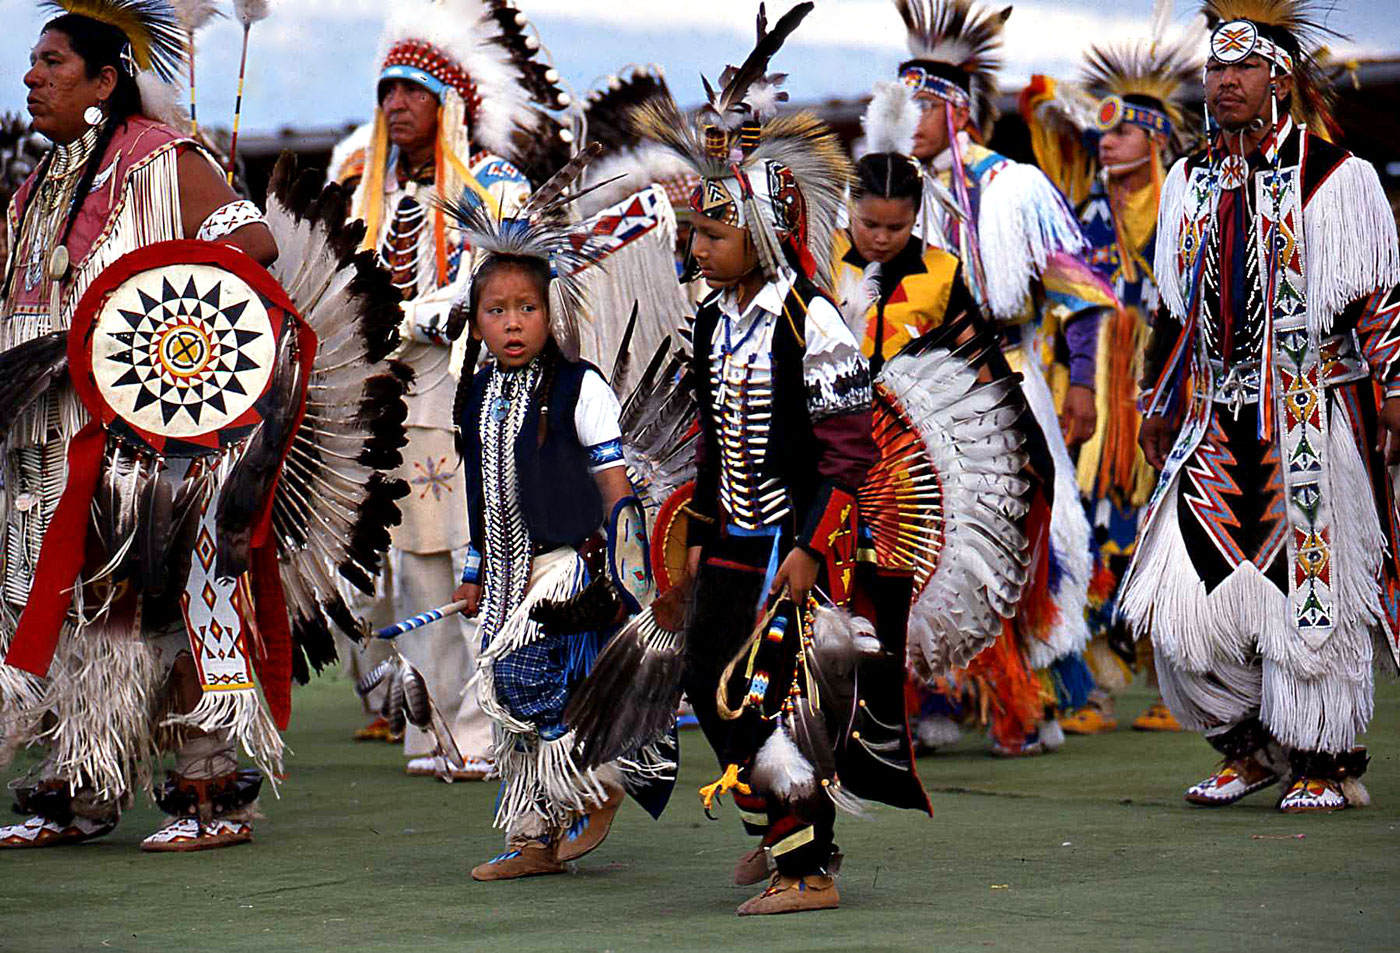 the americans and indians Native americans, also known as amerindians, american indians, indians, indigenous americans and other terms, are the indigenous peoples of the united statesthere are over 500 federally recognized tribes within the us, about half of which are associated with indian reservations.